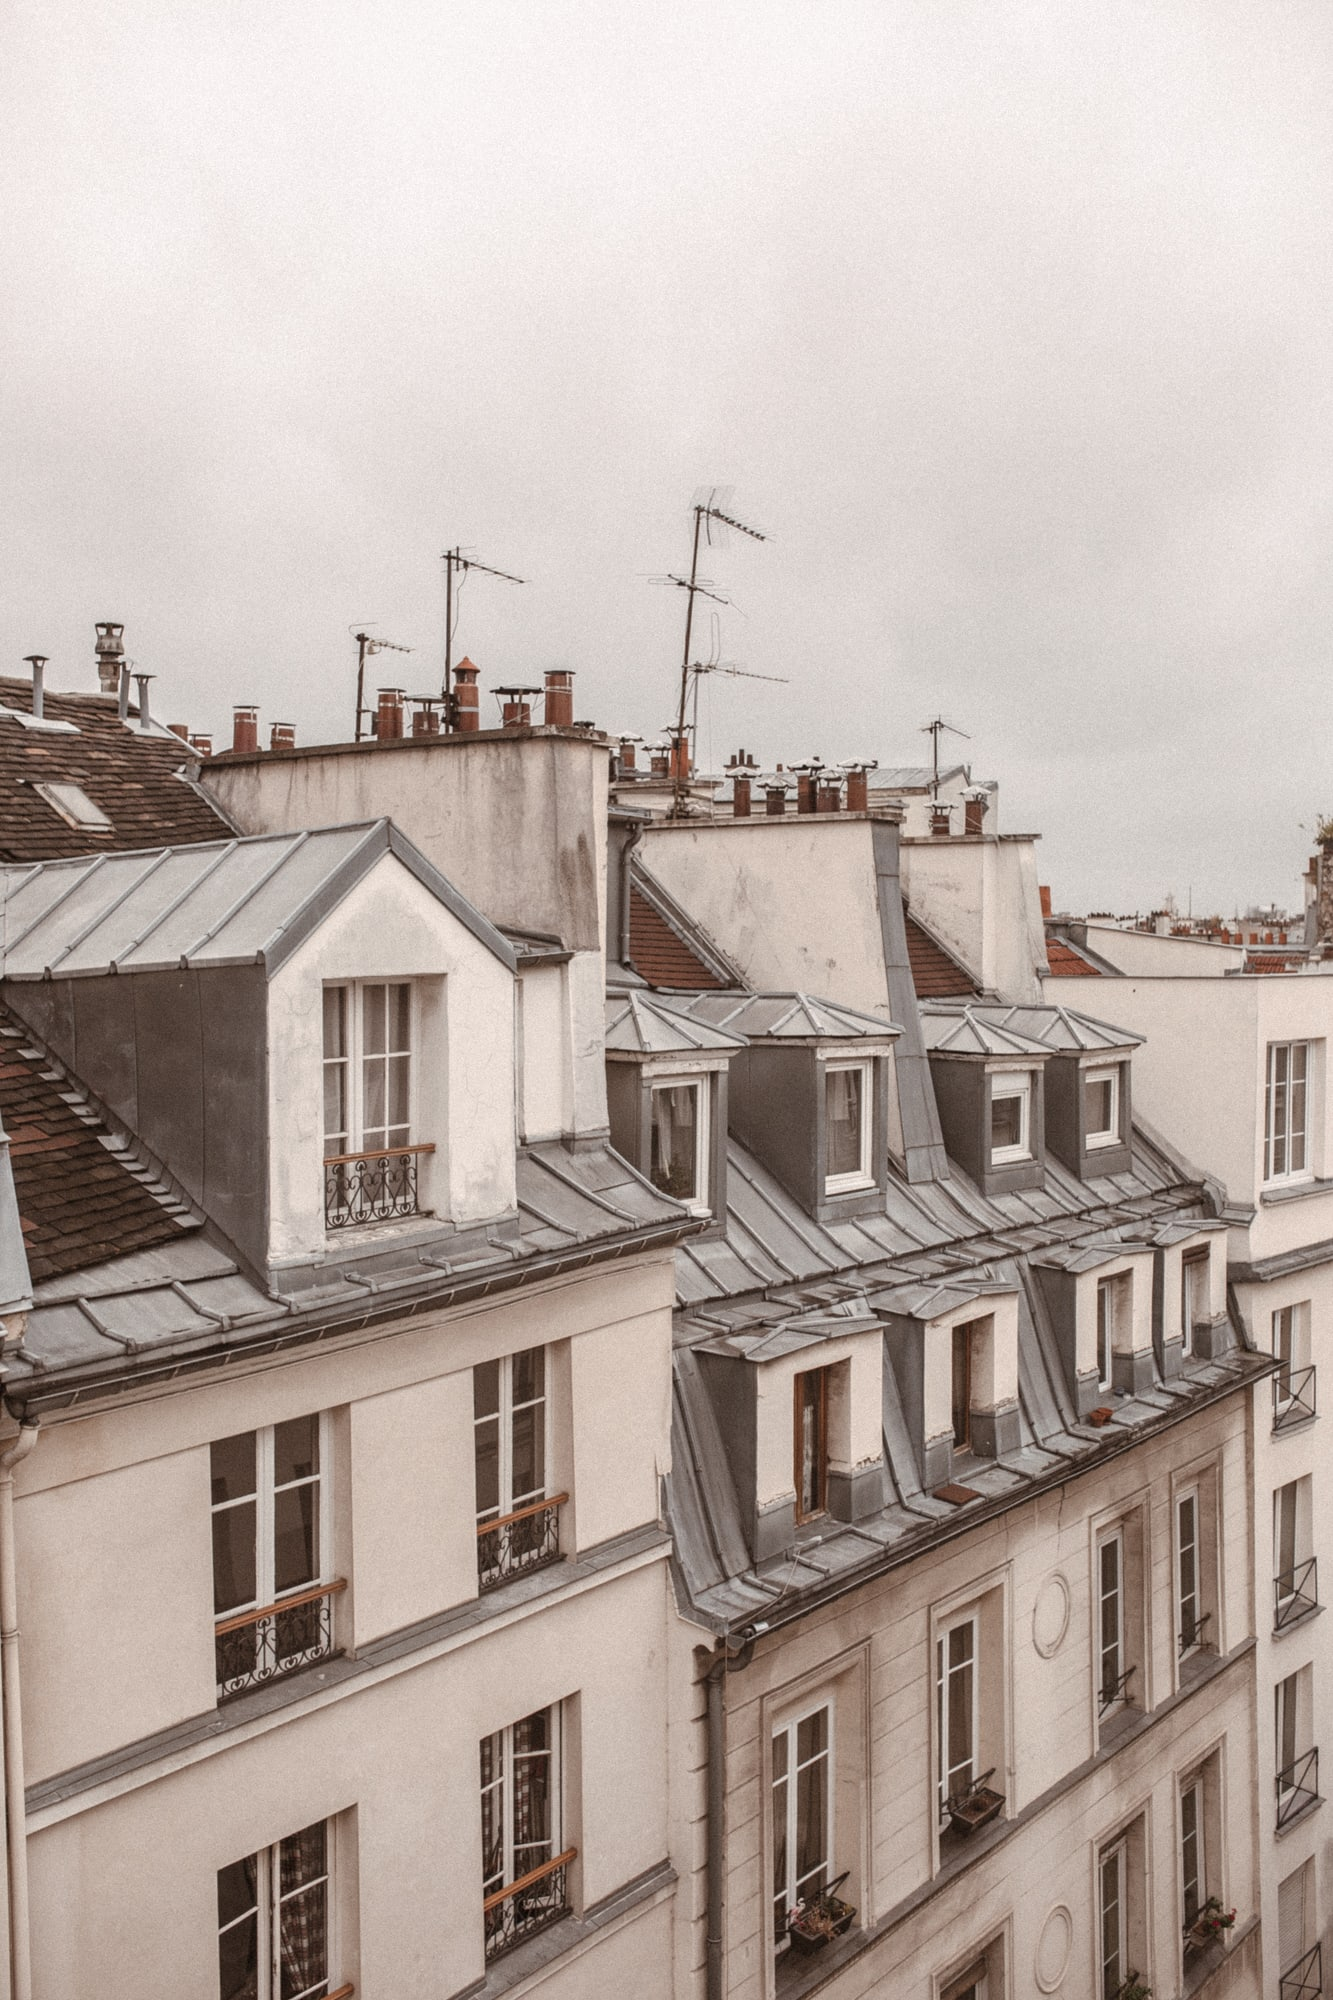 Sarah Loven - Jetsetlust.com // Hotel Bonne Nouvelle // Paris Travel Guide: Where to Stay